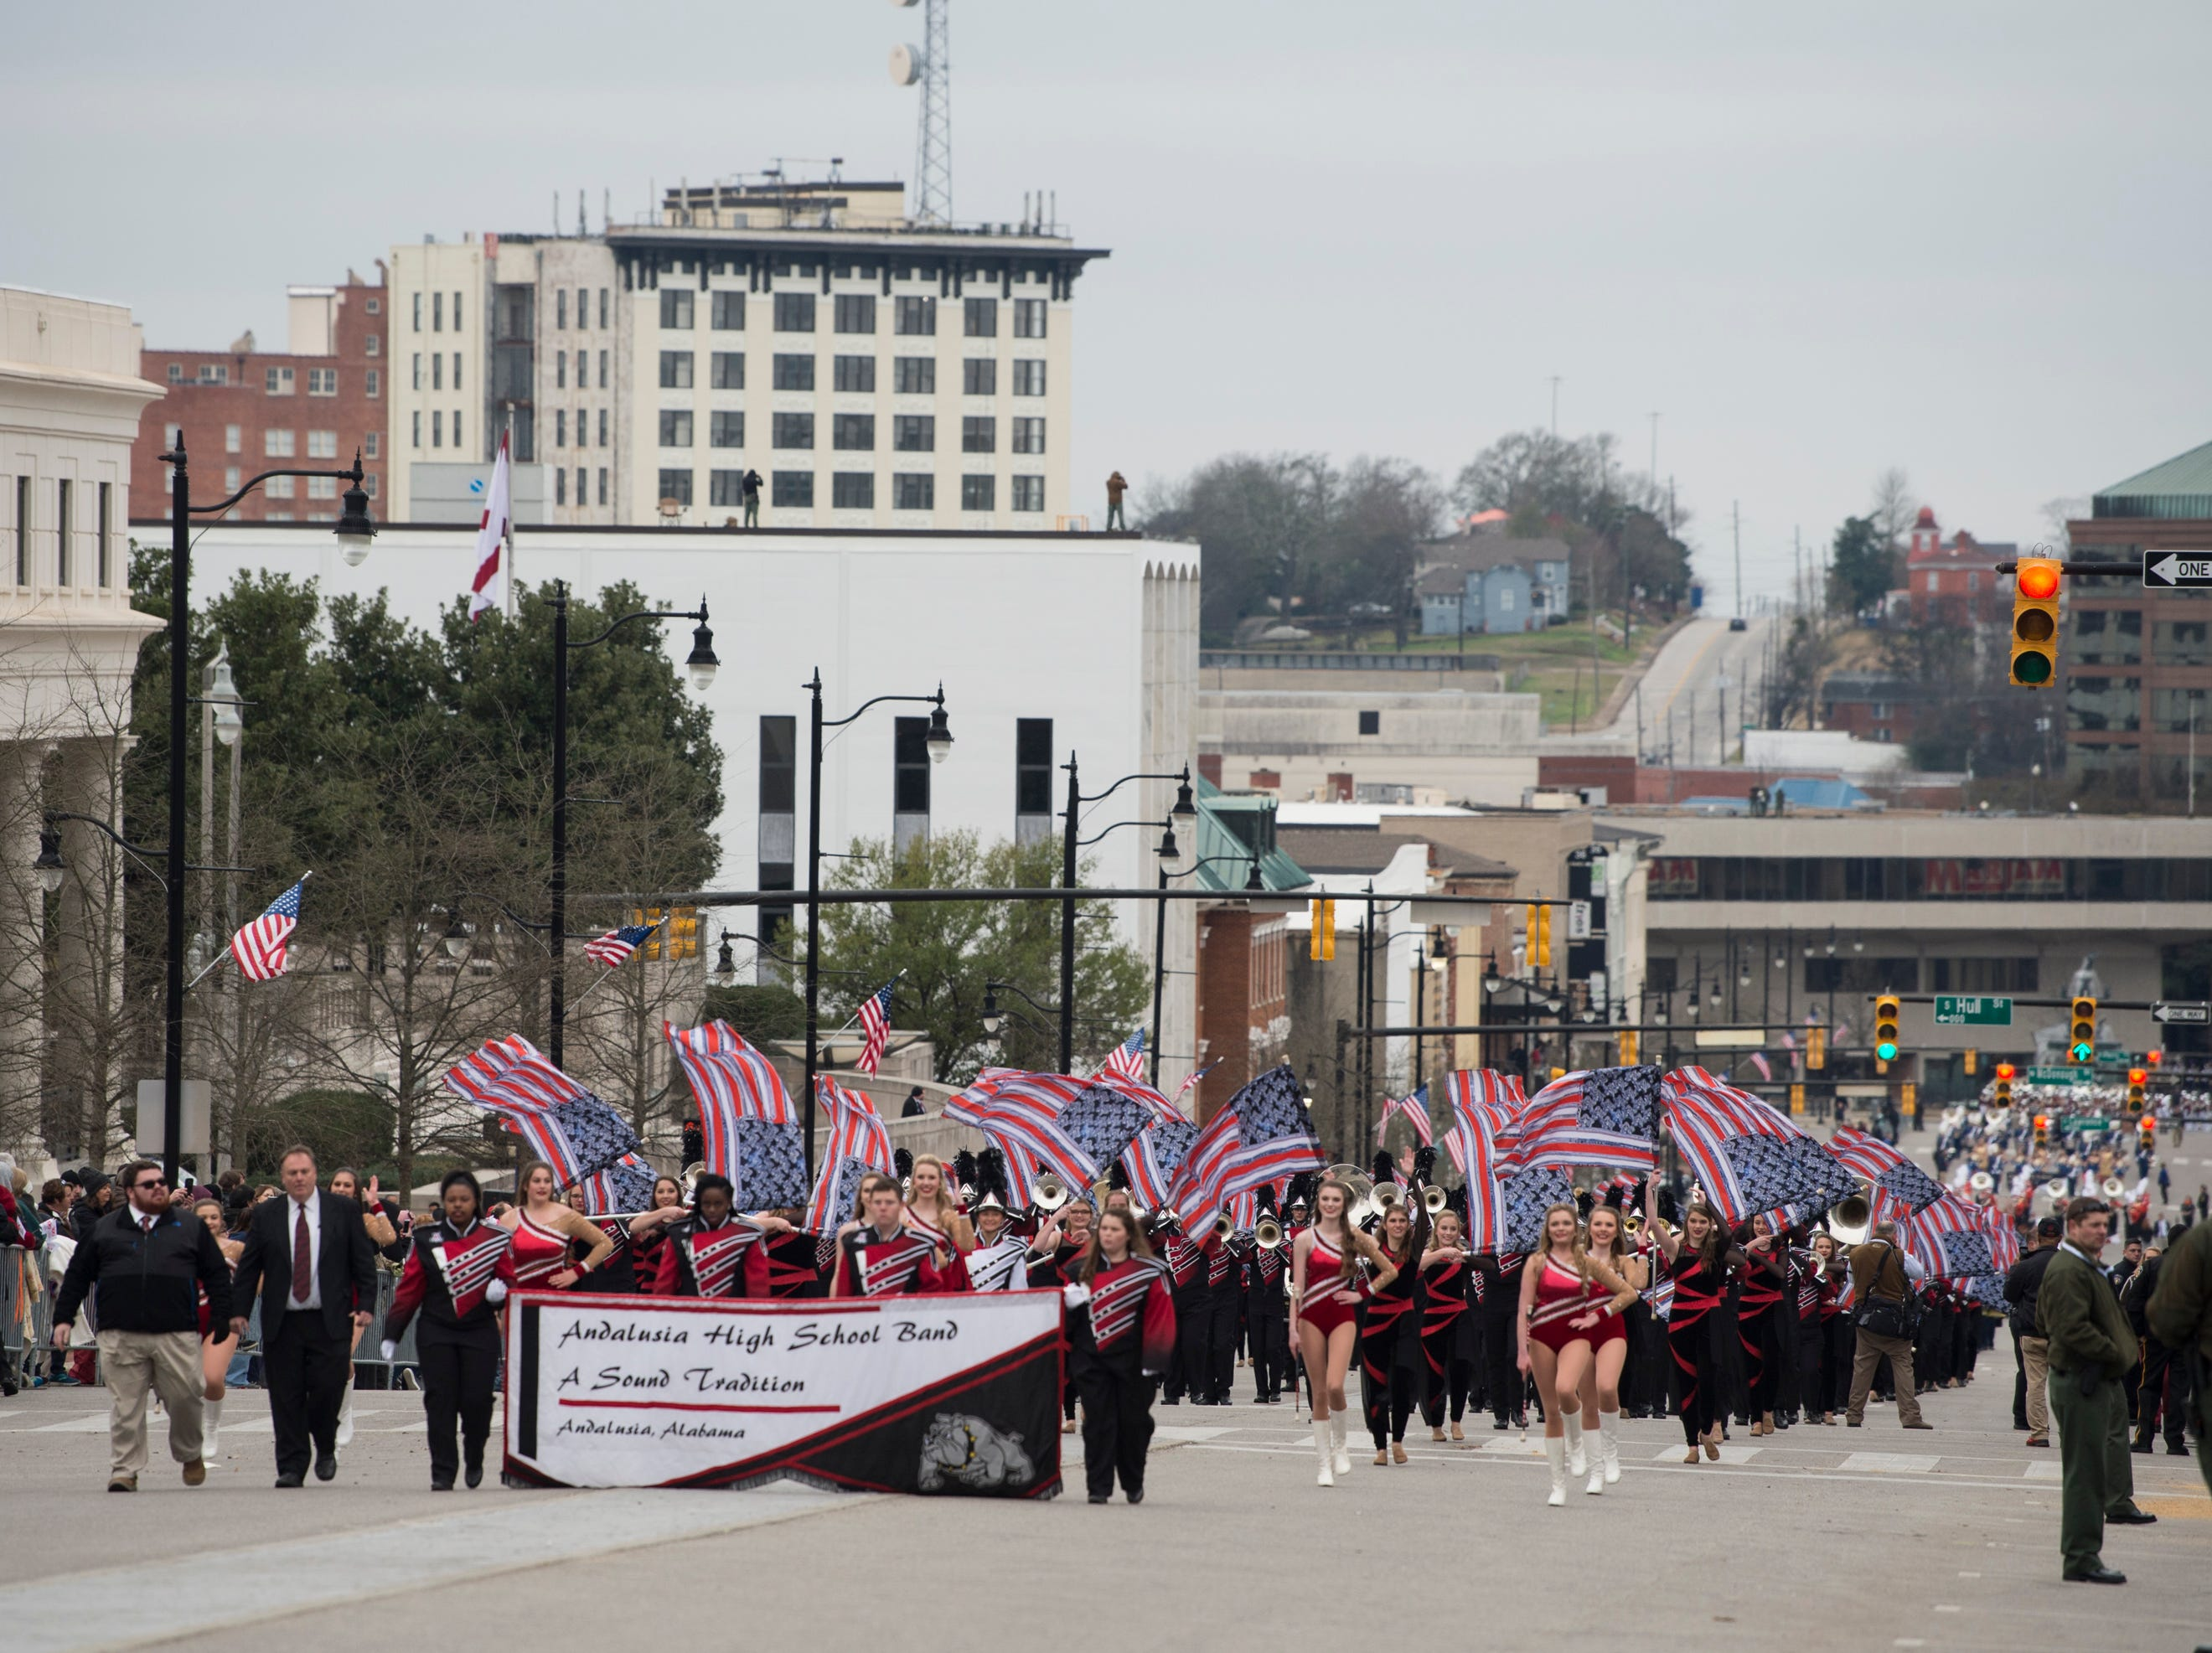 Andalusia High School marching band plays during the inauguration day parade in Montgomery, Ala., on Monday, Jan. 14, 2019.